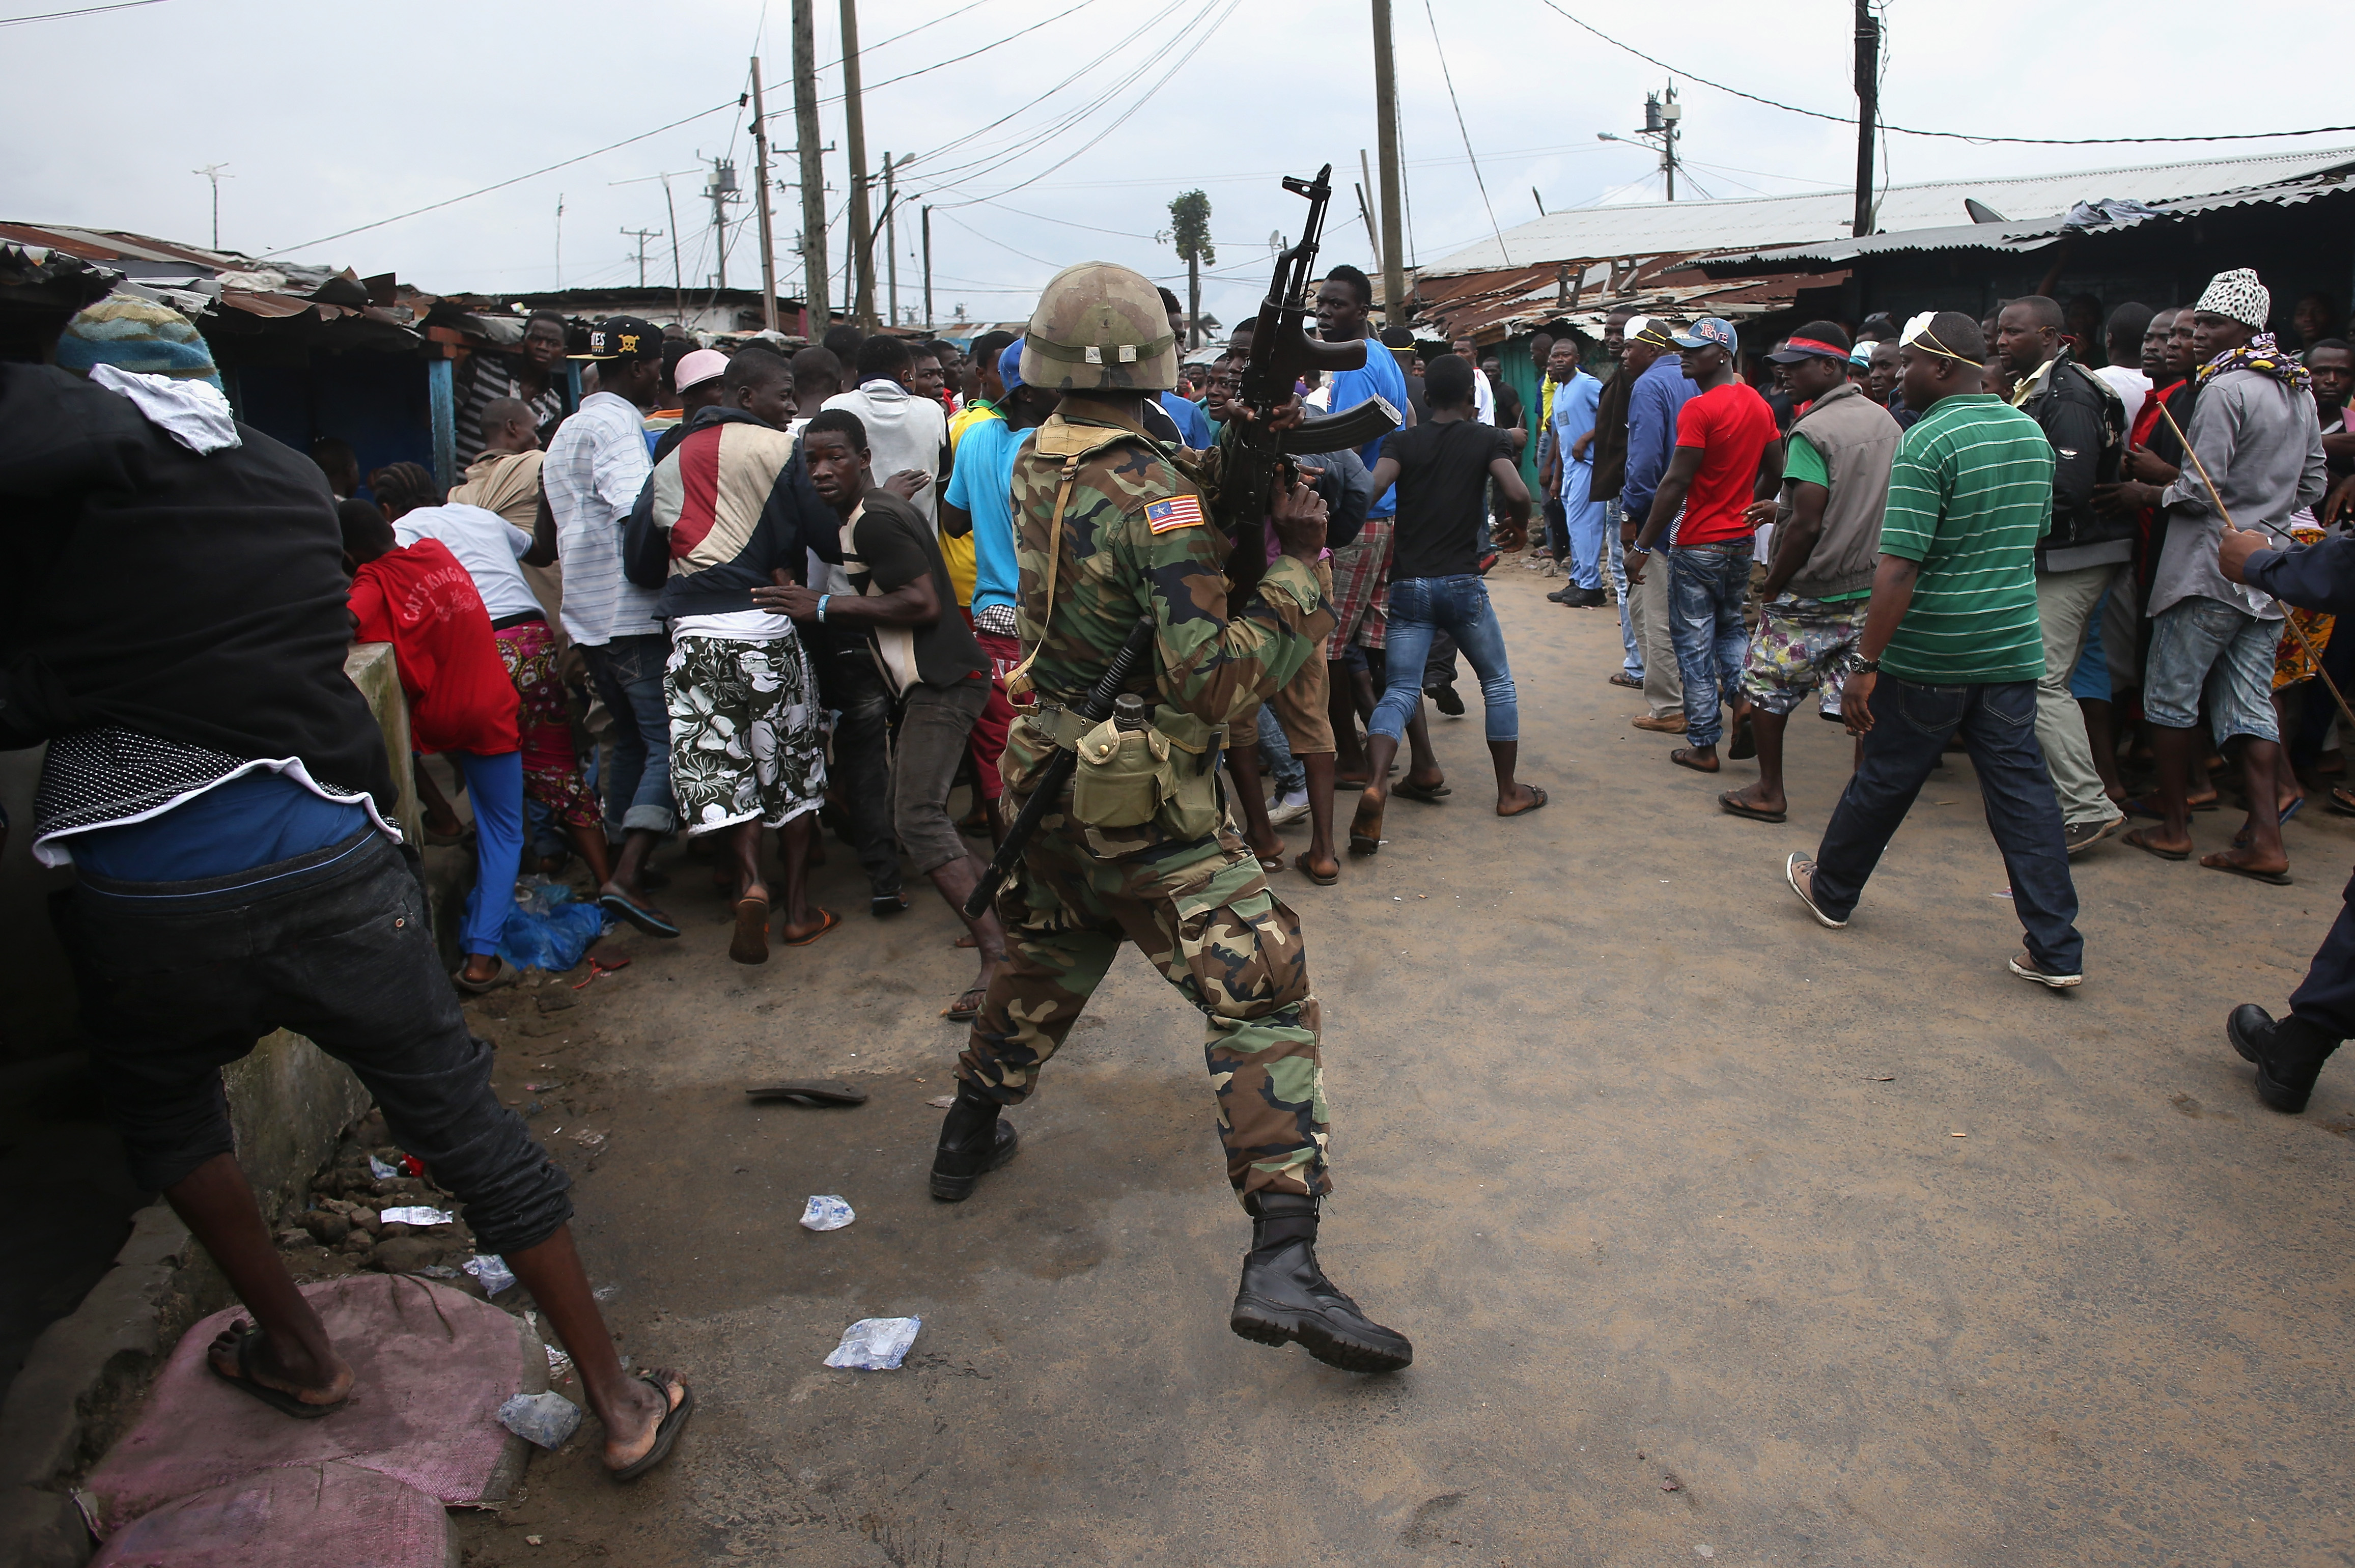 A Liberian Army soldier, part of the Ebola Task Force, pushes back local residents while enforcing a quarantine on the West Point slum on August 20, 2014 in Monrovia, Liberia.